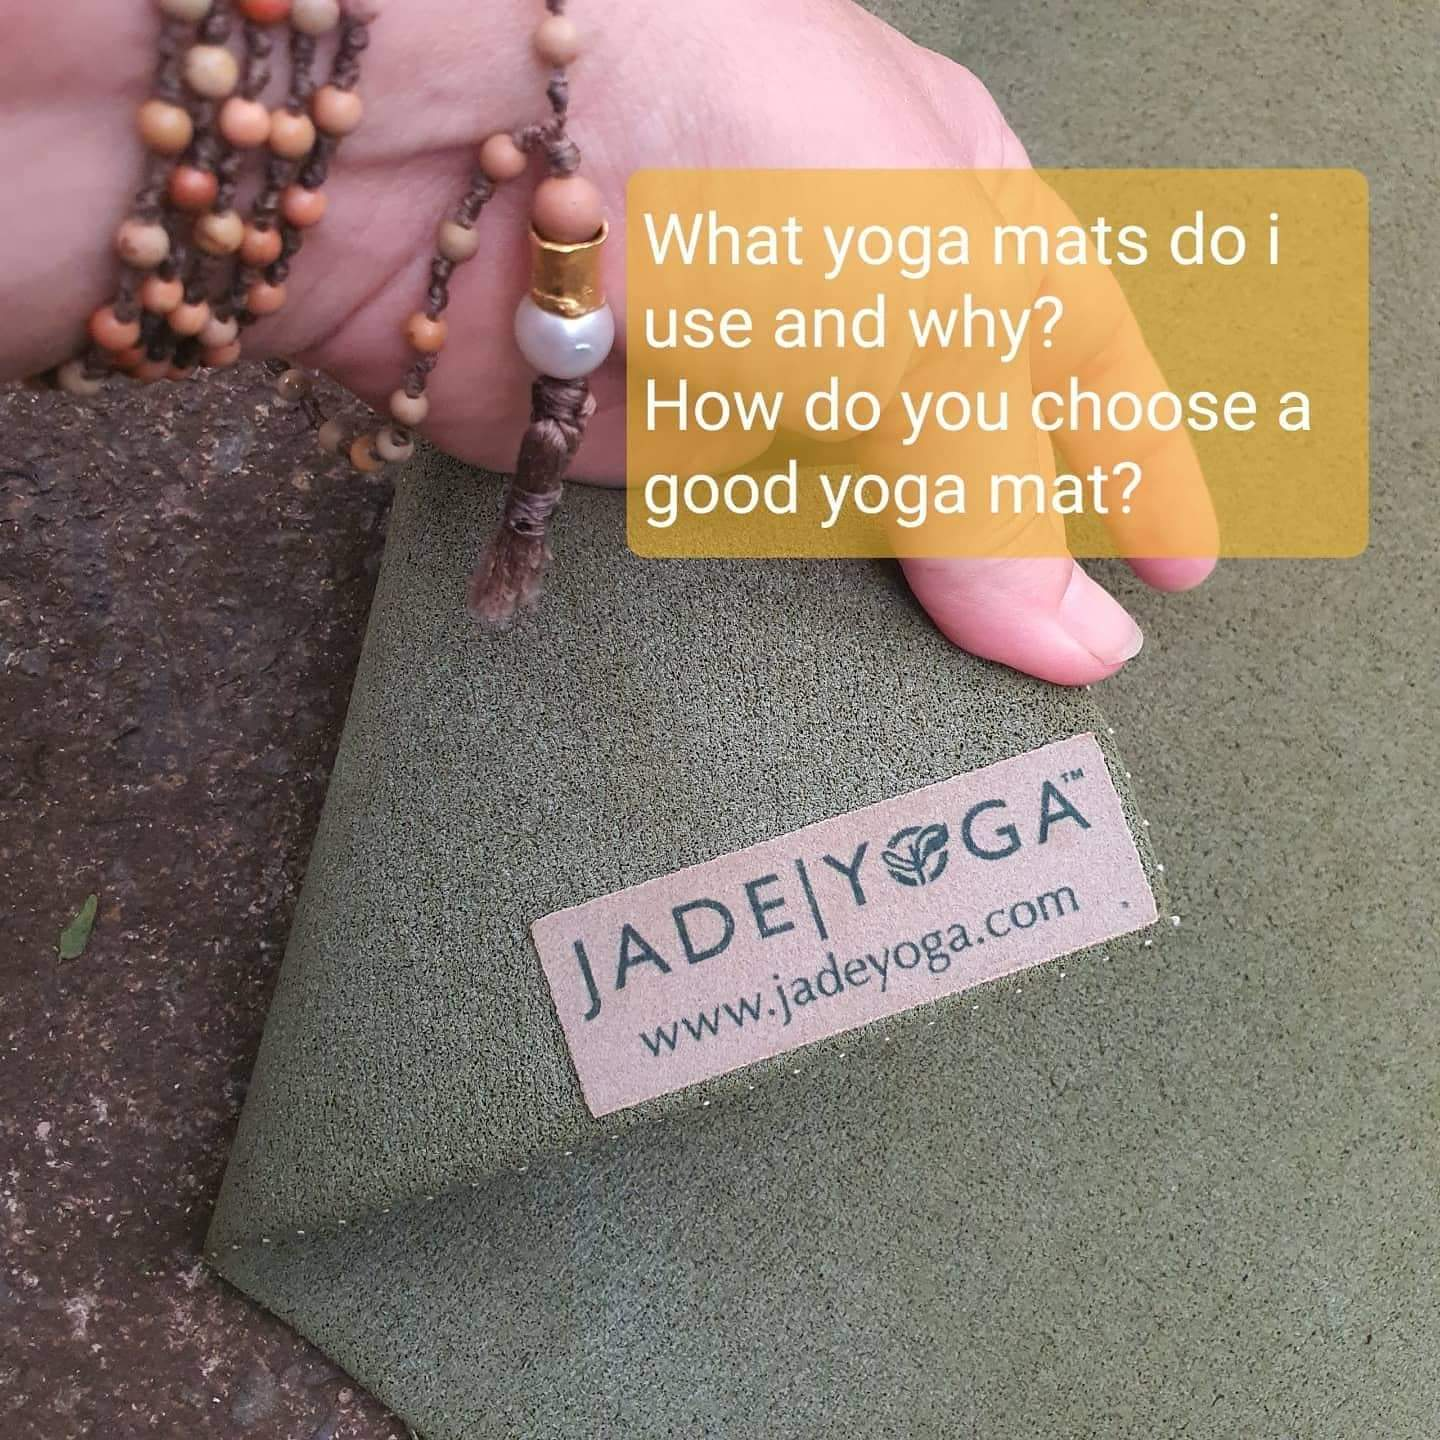 My Jade Yoga Mat is still in use after 10 years of daily practice. Still grippy, a bit ugly these days but it still does the job.